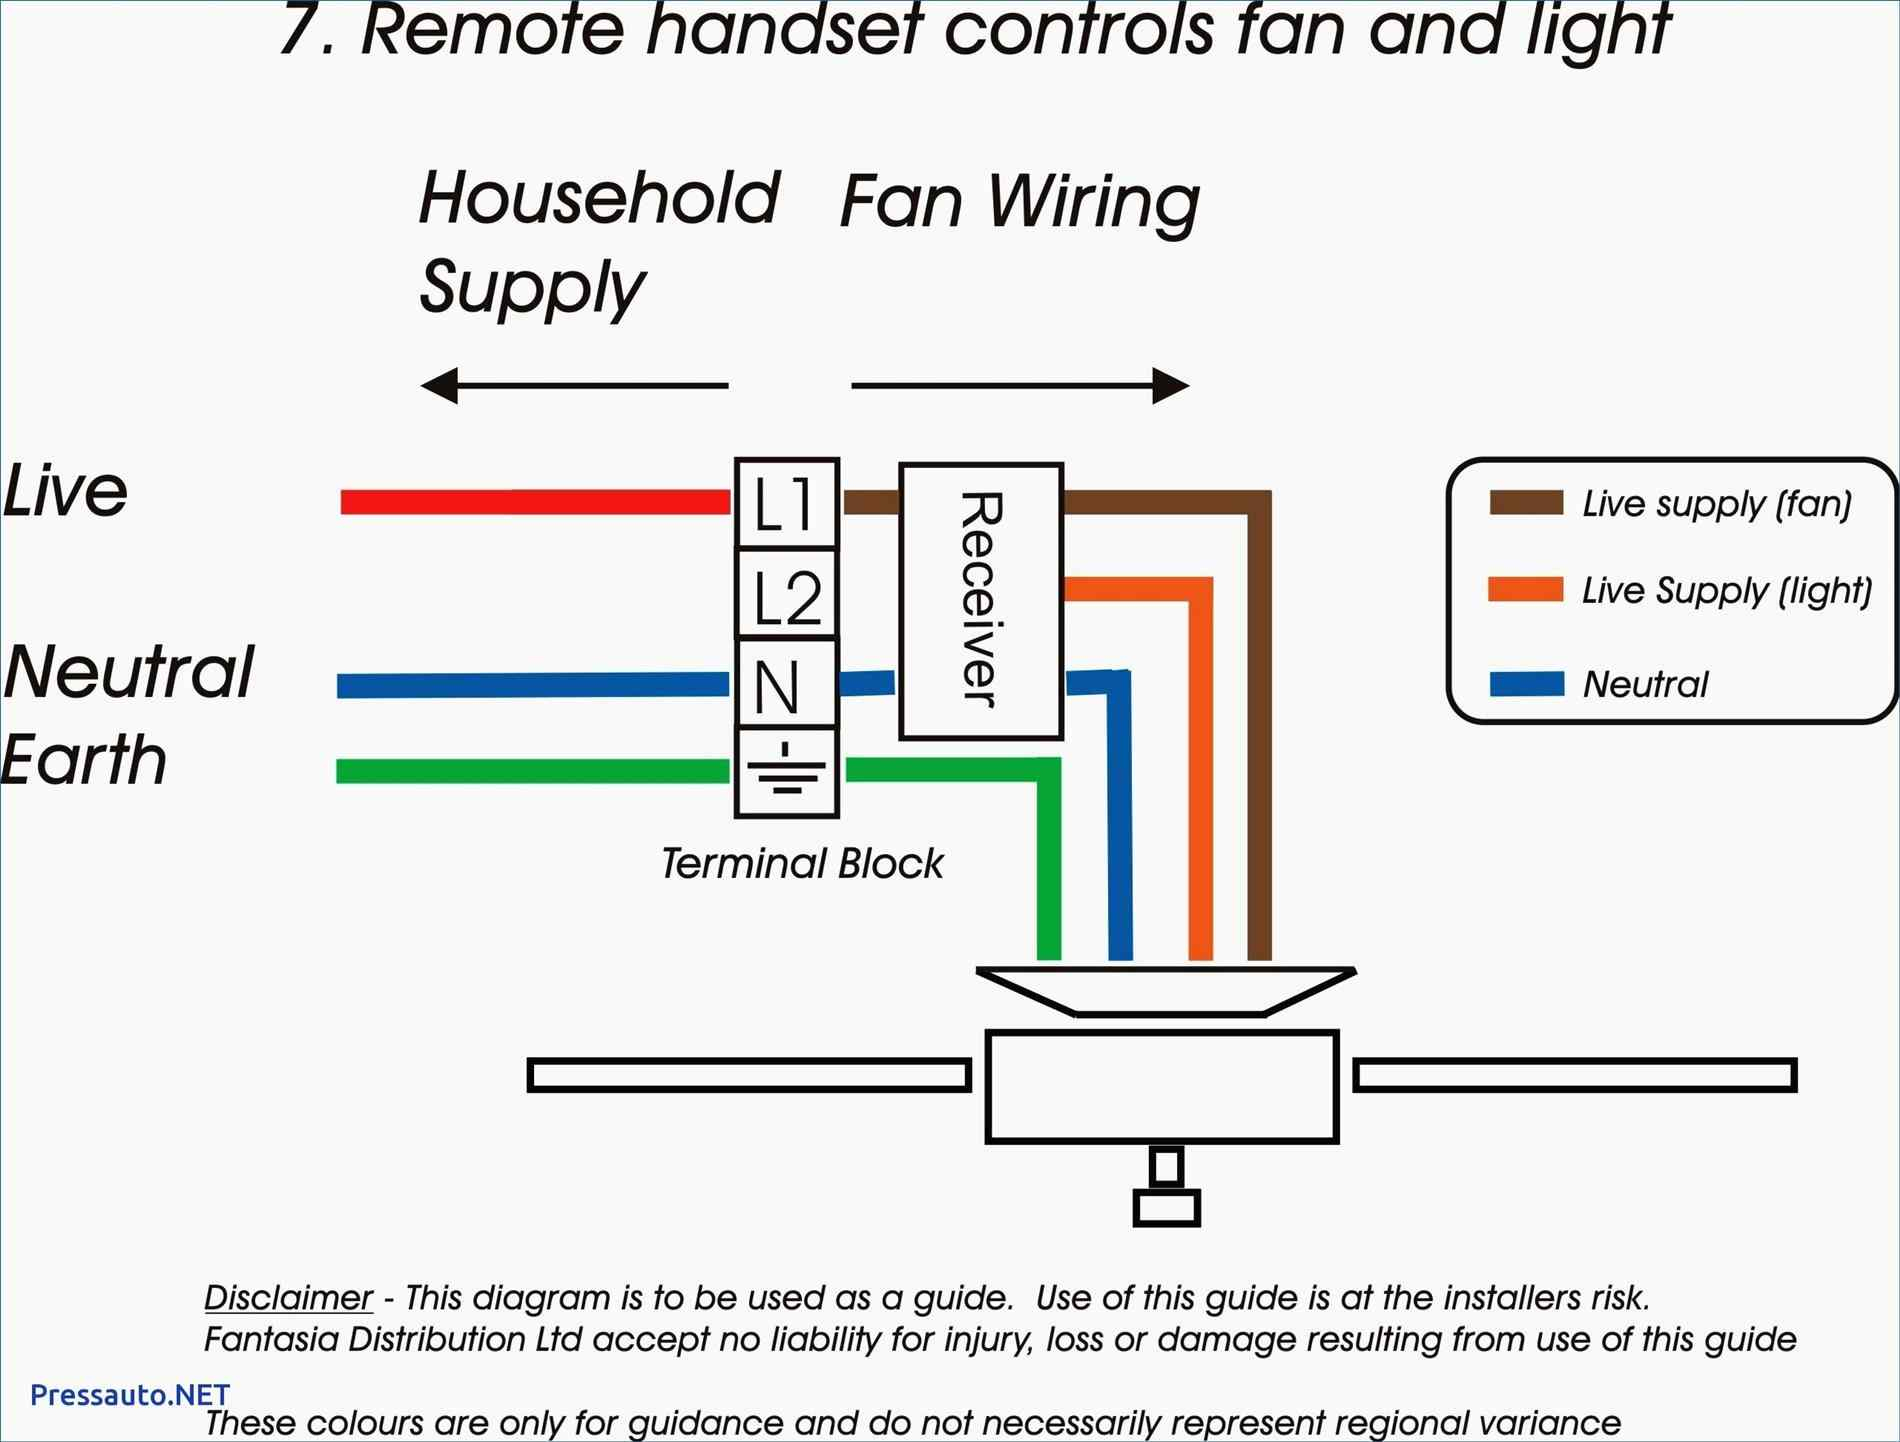 micro hdmi wiring diagram | wiring library - usb mini fan ... two prong micro switch wiring diagram micro hdmi wiring diagram